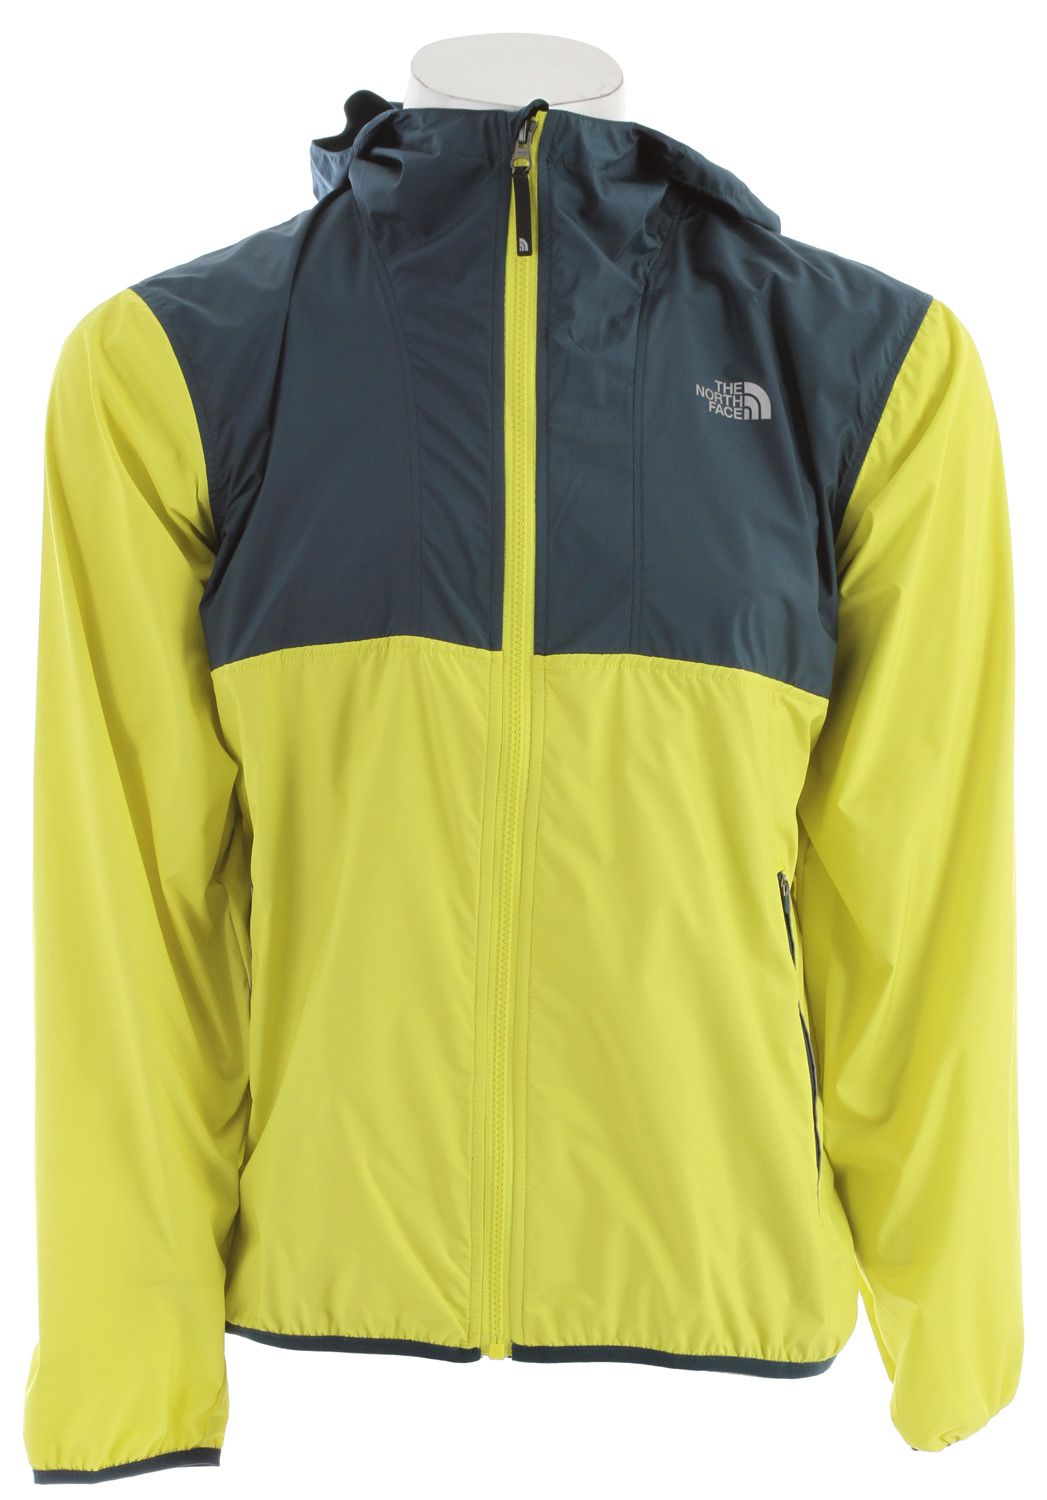 "MTB A lightweight, wind-resistant jacket with bike-friendly features and reflective trim to keep you comfortable and visible during your bike commute. Key Features of The North Face Ripley Jacket: Wind resistant Helmet-compatible fixed hood Zip hand pockets Single back zip security pocket Drop tail Media port Reflective elements Avg weight: 250 g (8.82 oz) Center back: 29.75"" Fabric: 50D 76 g/m² (2.24 oz/yd²) 100% recycled polyester taffeta with DWR - $68.95"